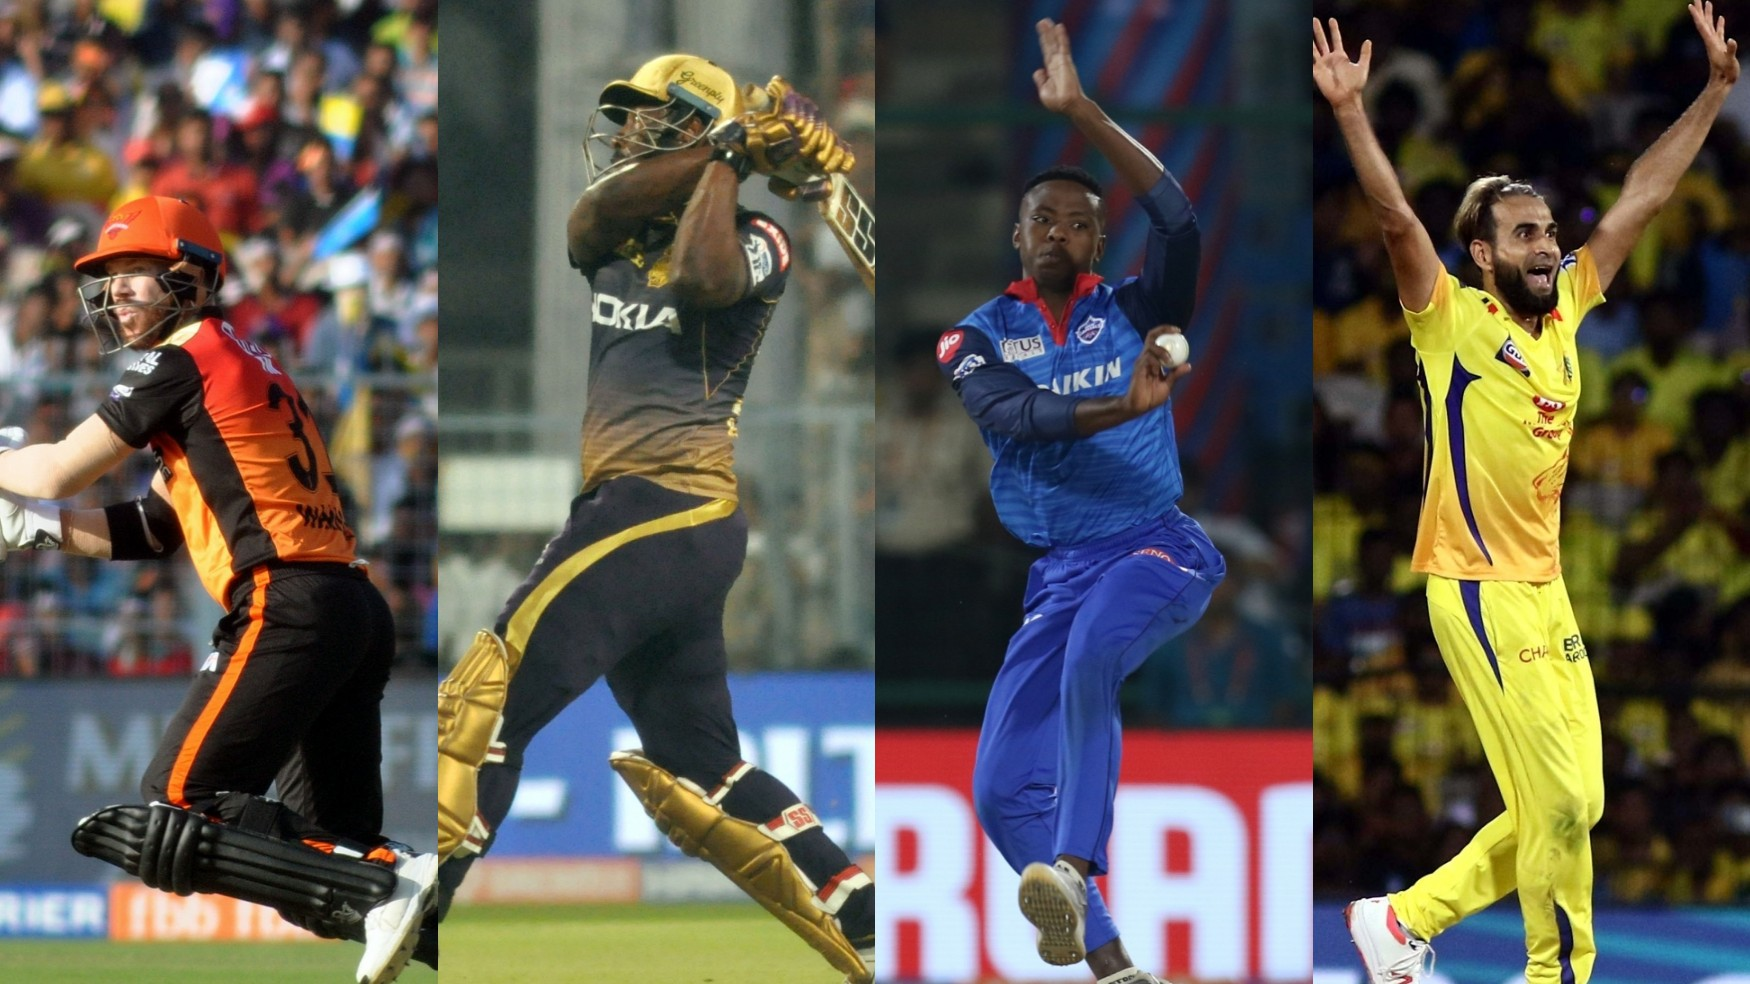 IPL 2019: Most Valuable Player (MVP) of each franchise from the first half of the IPL 12